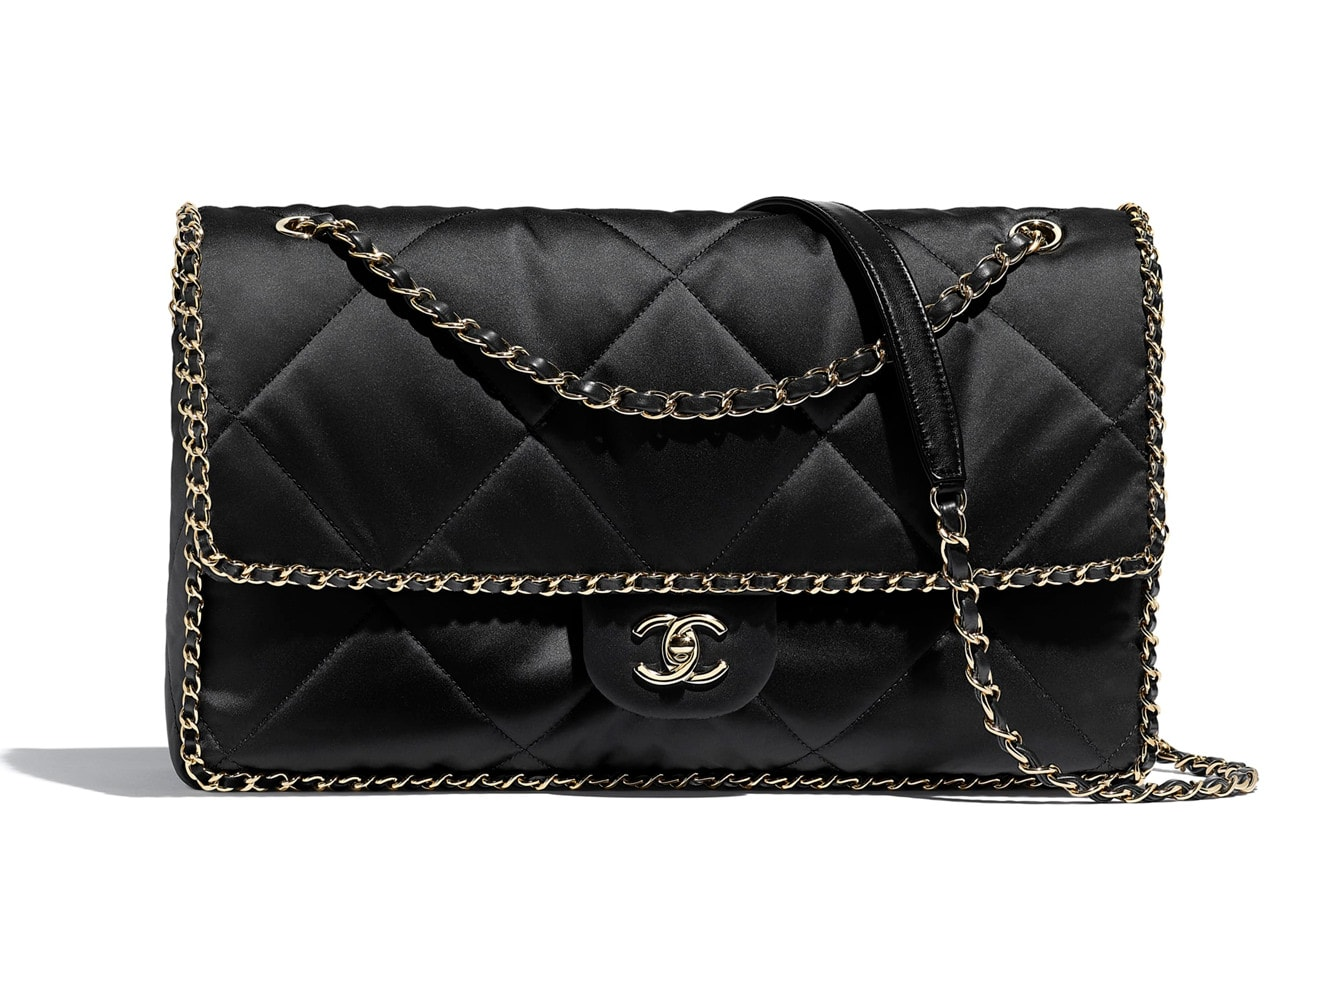 Chanel-Satin-Flap-Bag